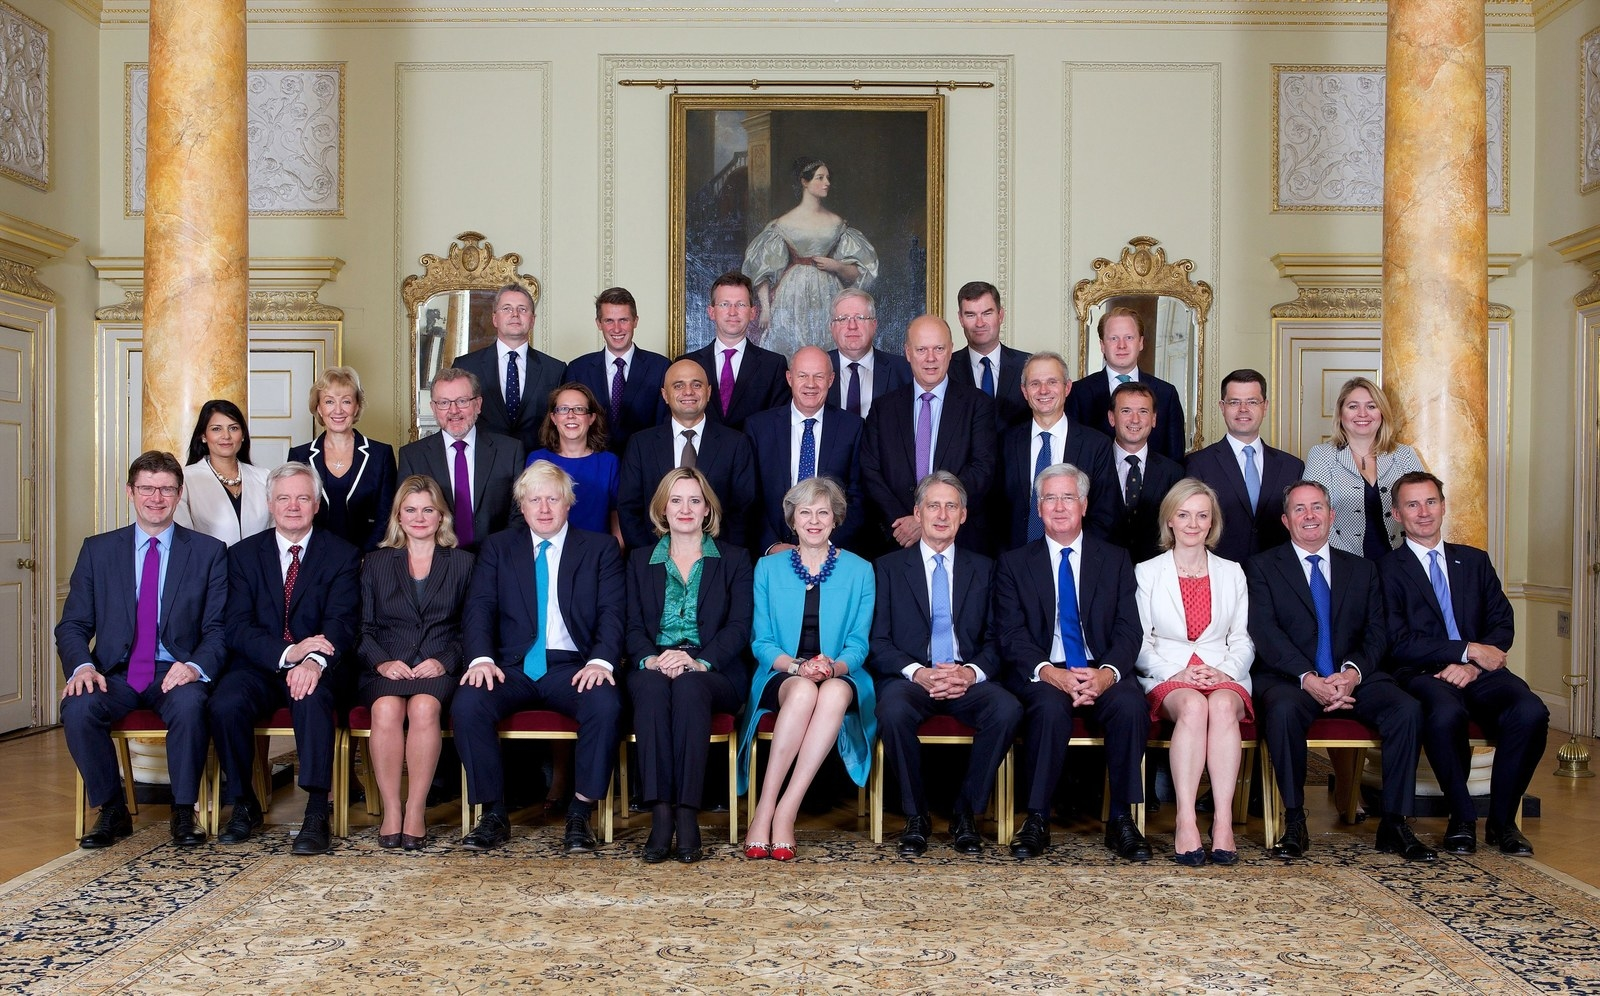 Superb You Know Your Way Around All The Middle Aged White Gentlemen Of The Cabinet.